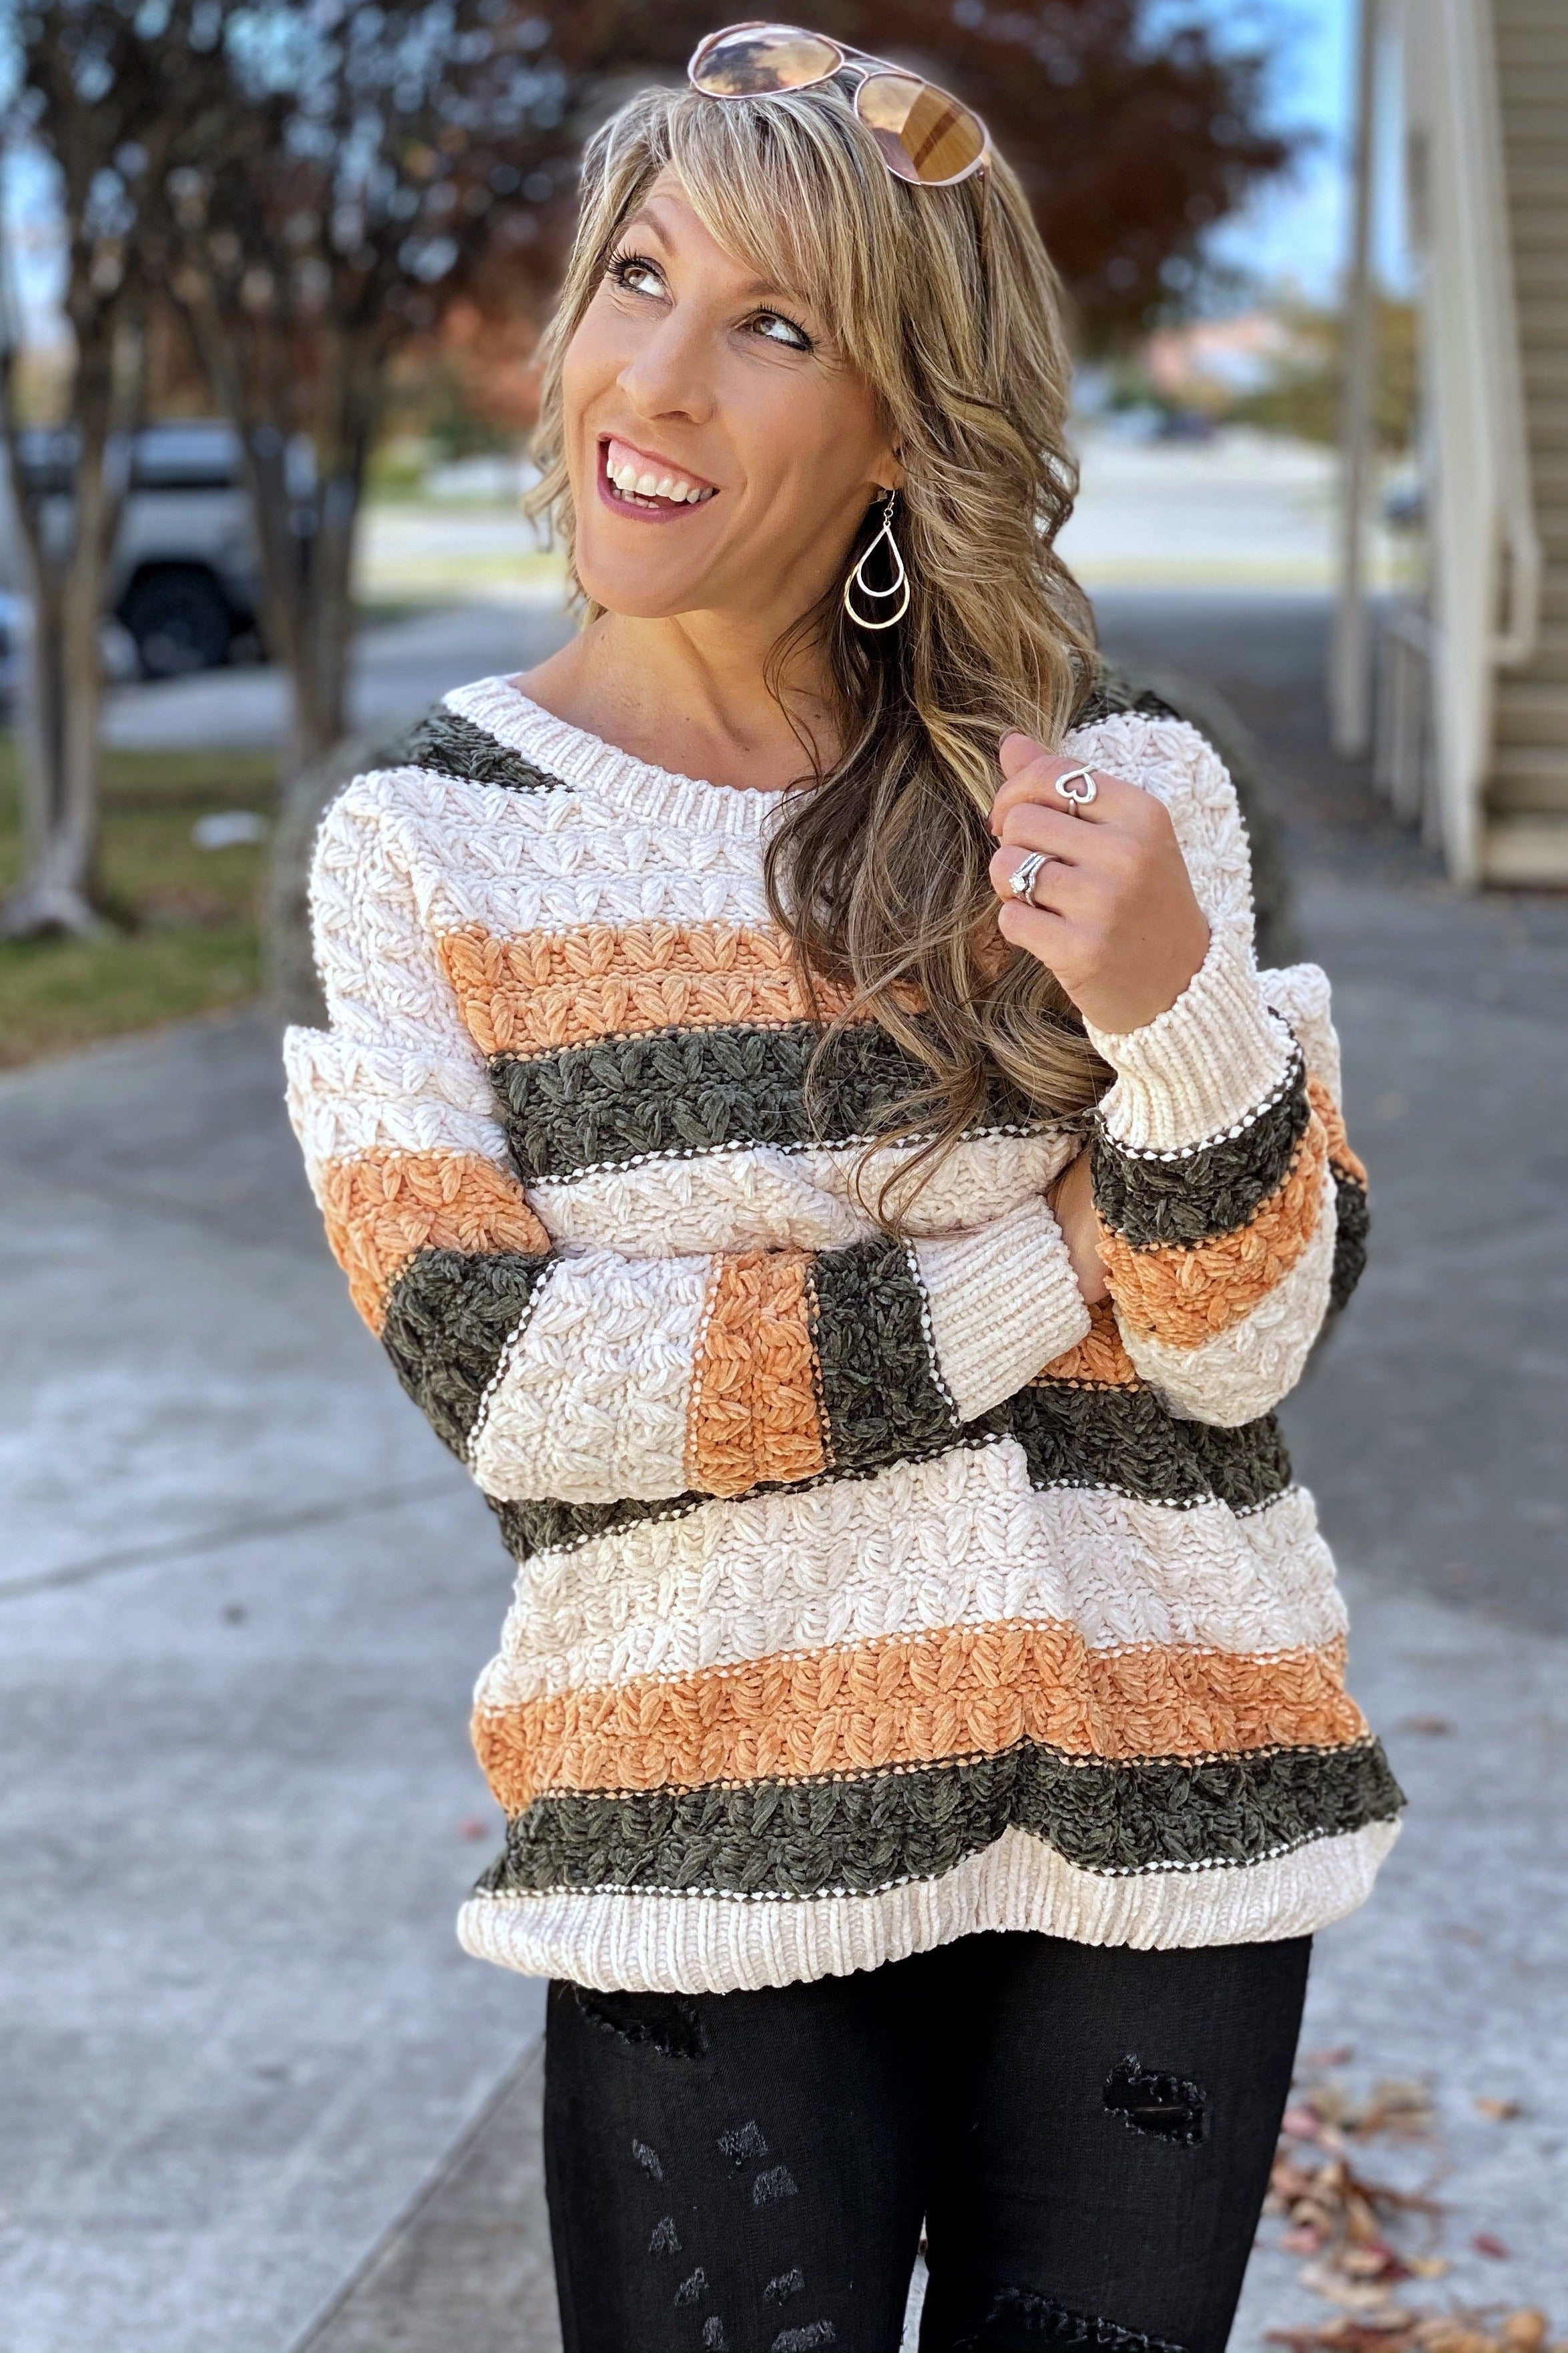 Can't Stop The Feeling Striped Thick Knit Sweater Top